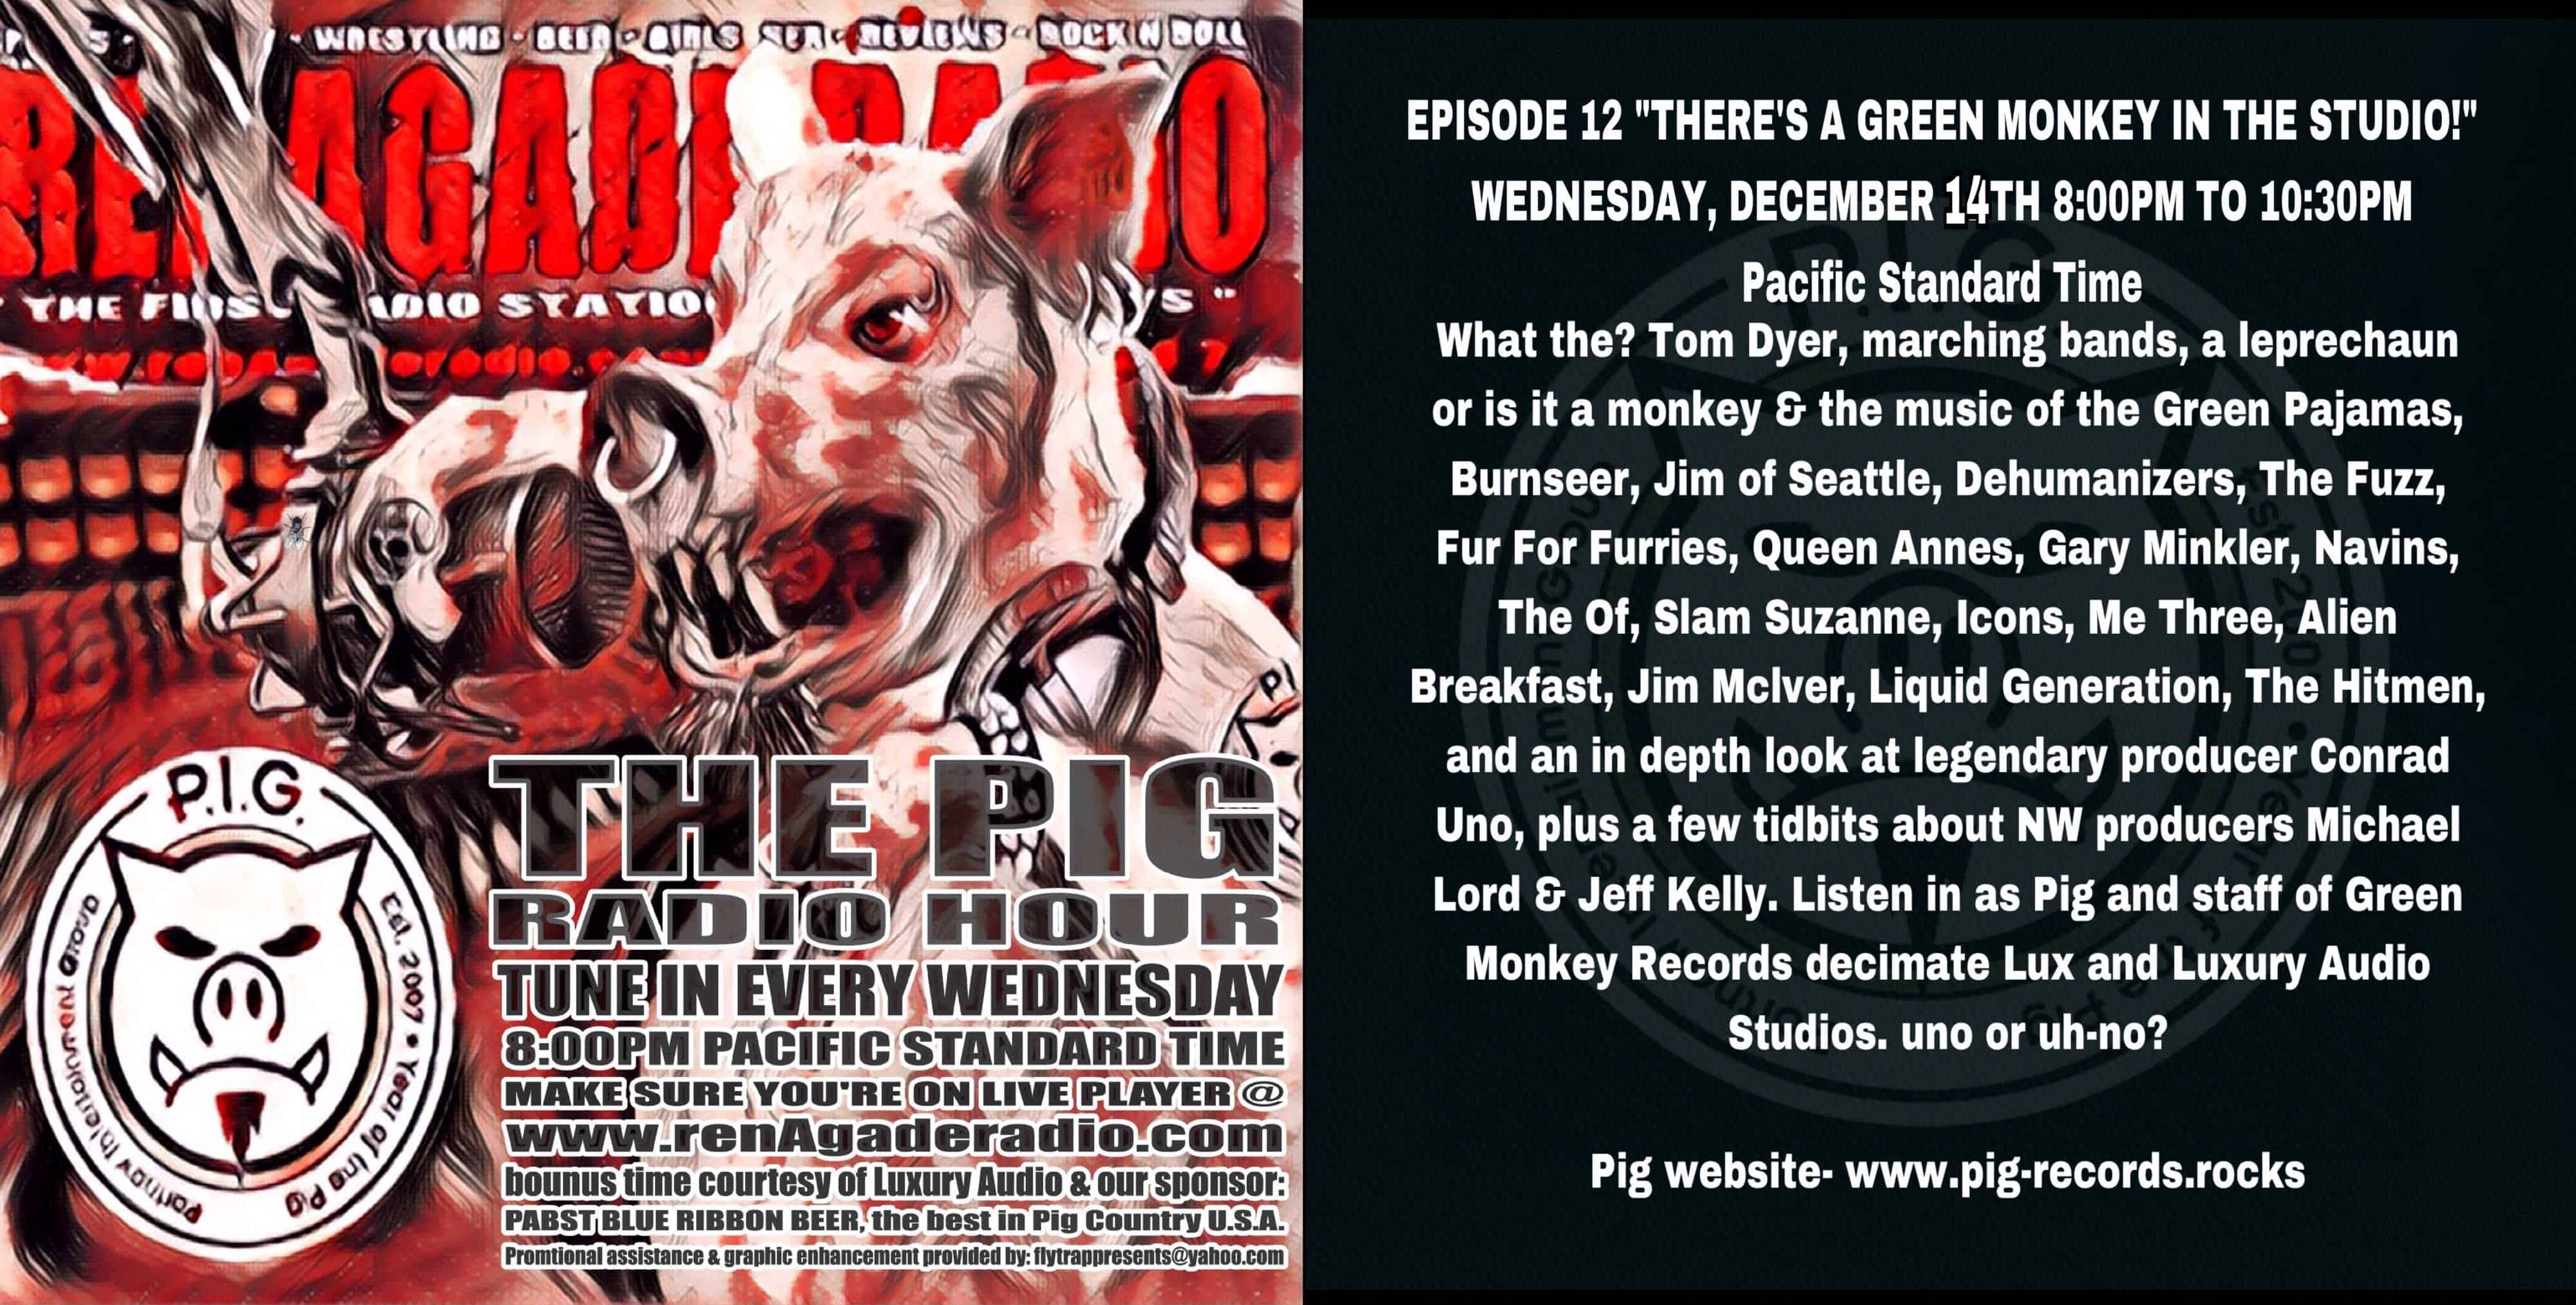 Tom Dyer Interviewed on The Pig Radio Hour This Wednesday!